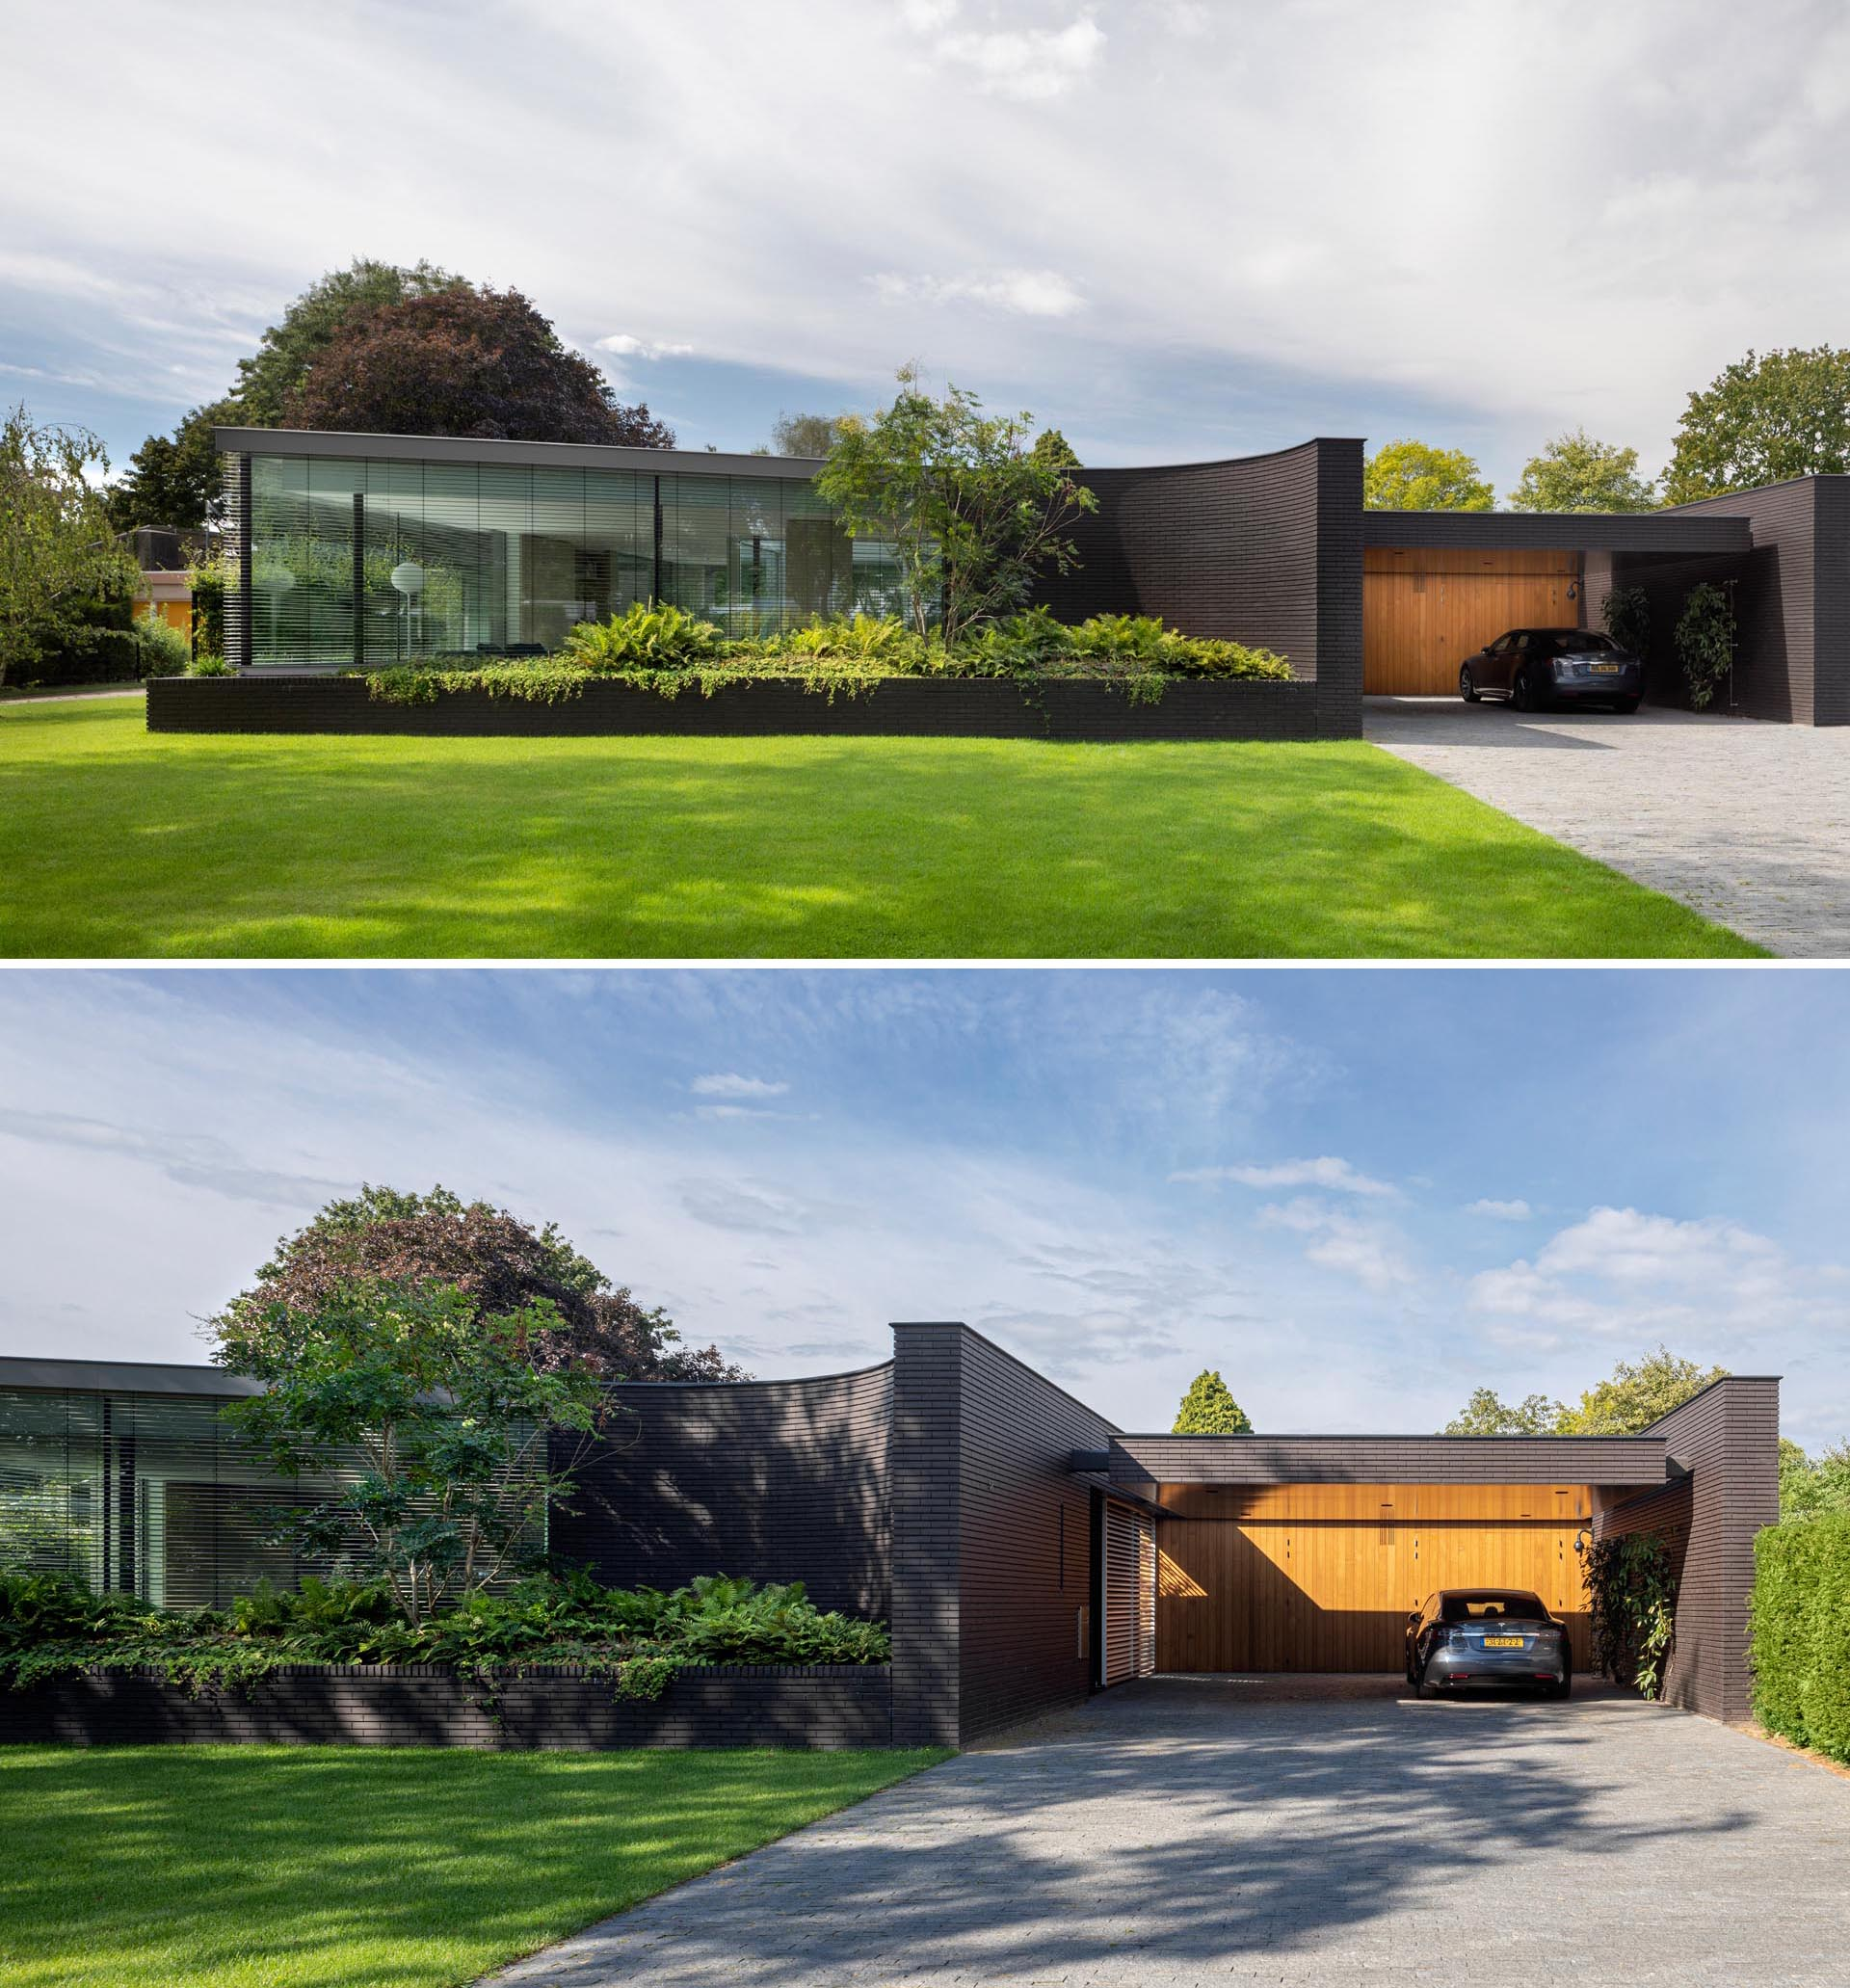 The black brick facade of this modern home features curves and has large integrated planters that highlight the lush greenery.